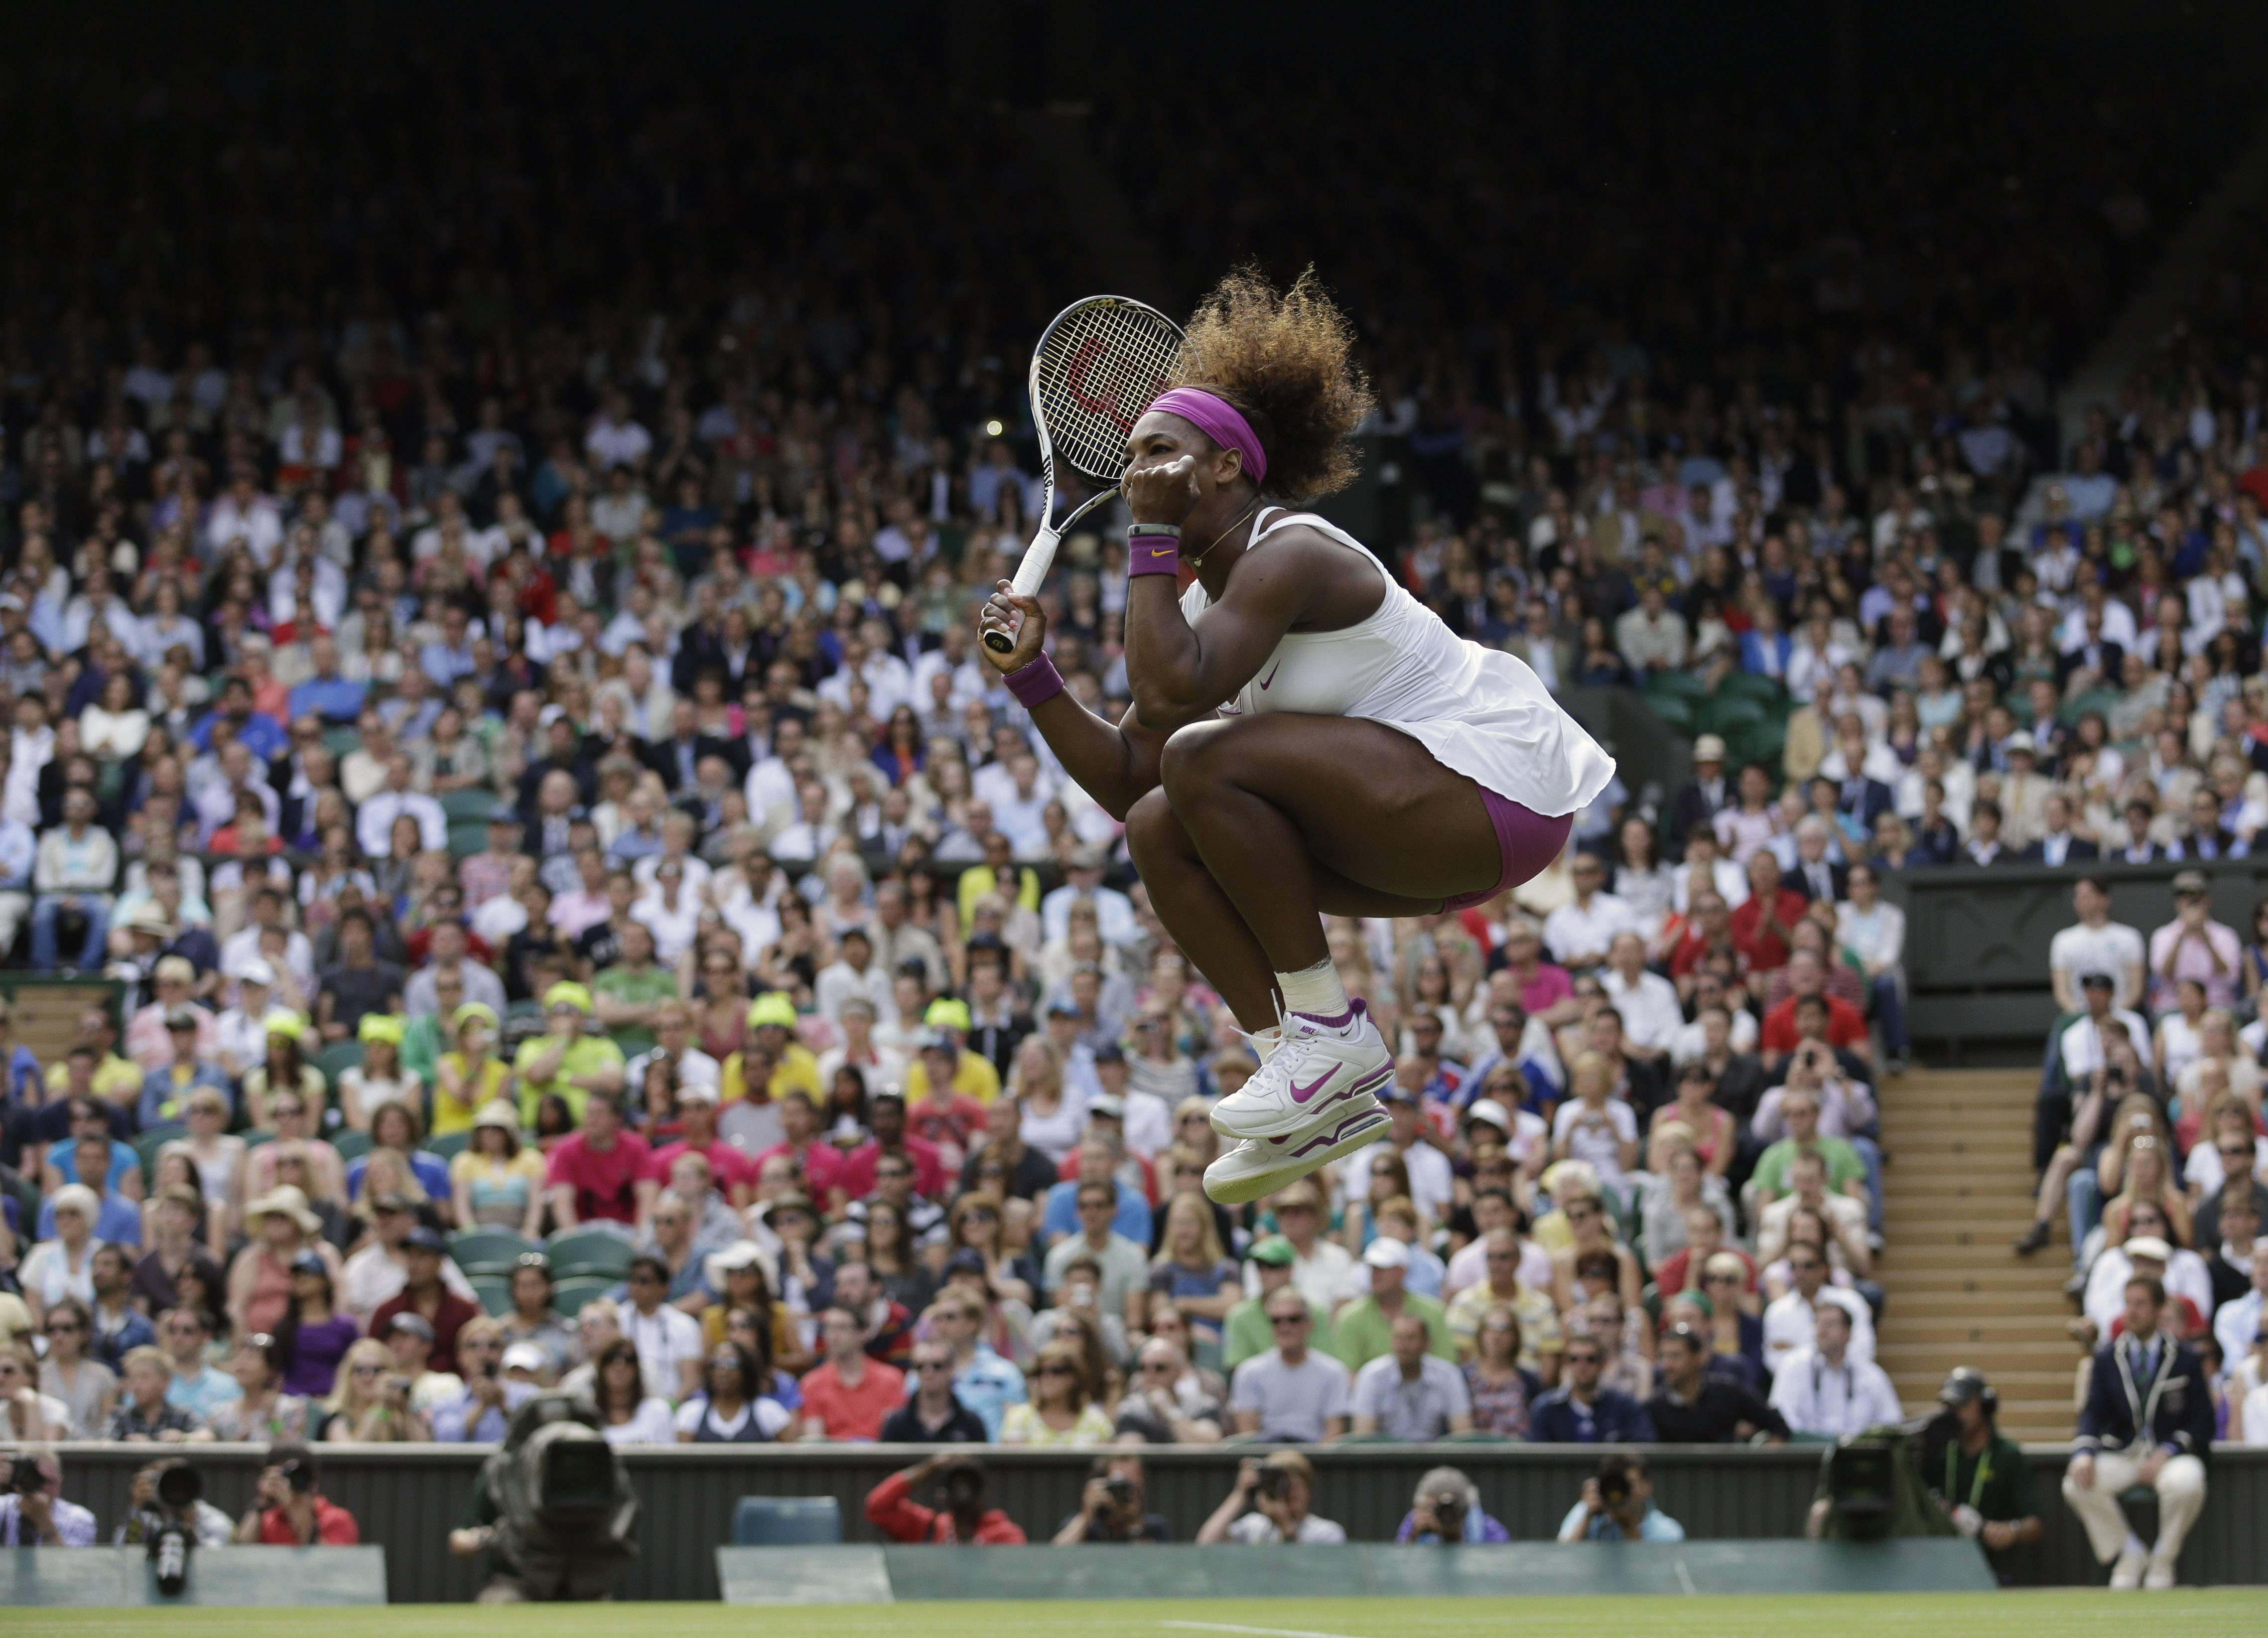 In this Saturday, June 30, 2012 file photo made by Associated Press photographer Anja Niedringhaus, Serena Williams of the United States reacts after winning against Zheng Jie of China during a third round women's singles match at the All England Lawn Tennis Championships at Wimbledon, England.